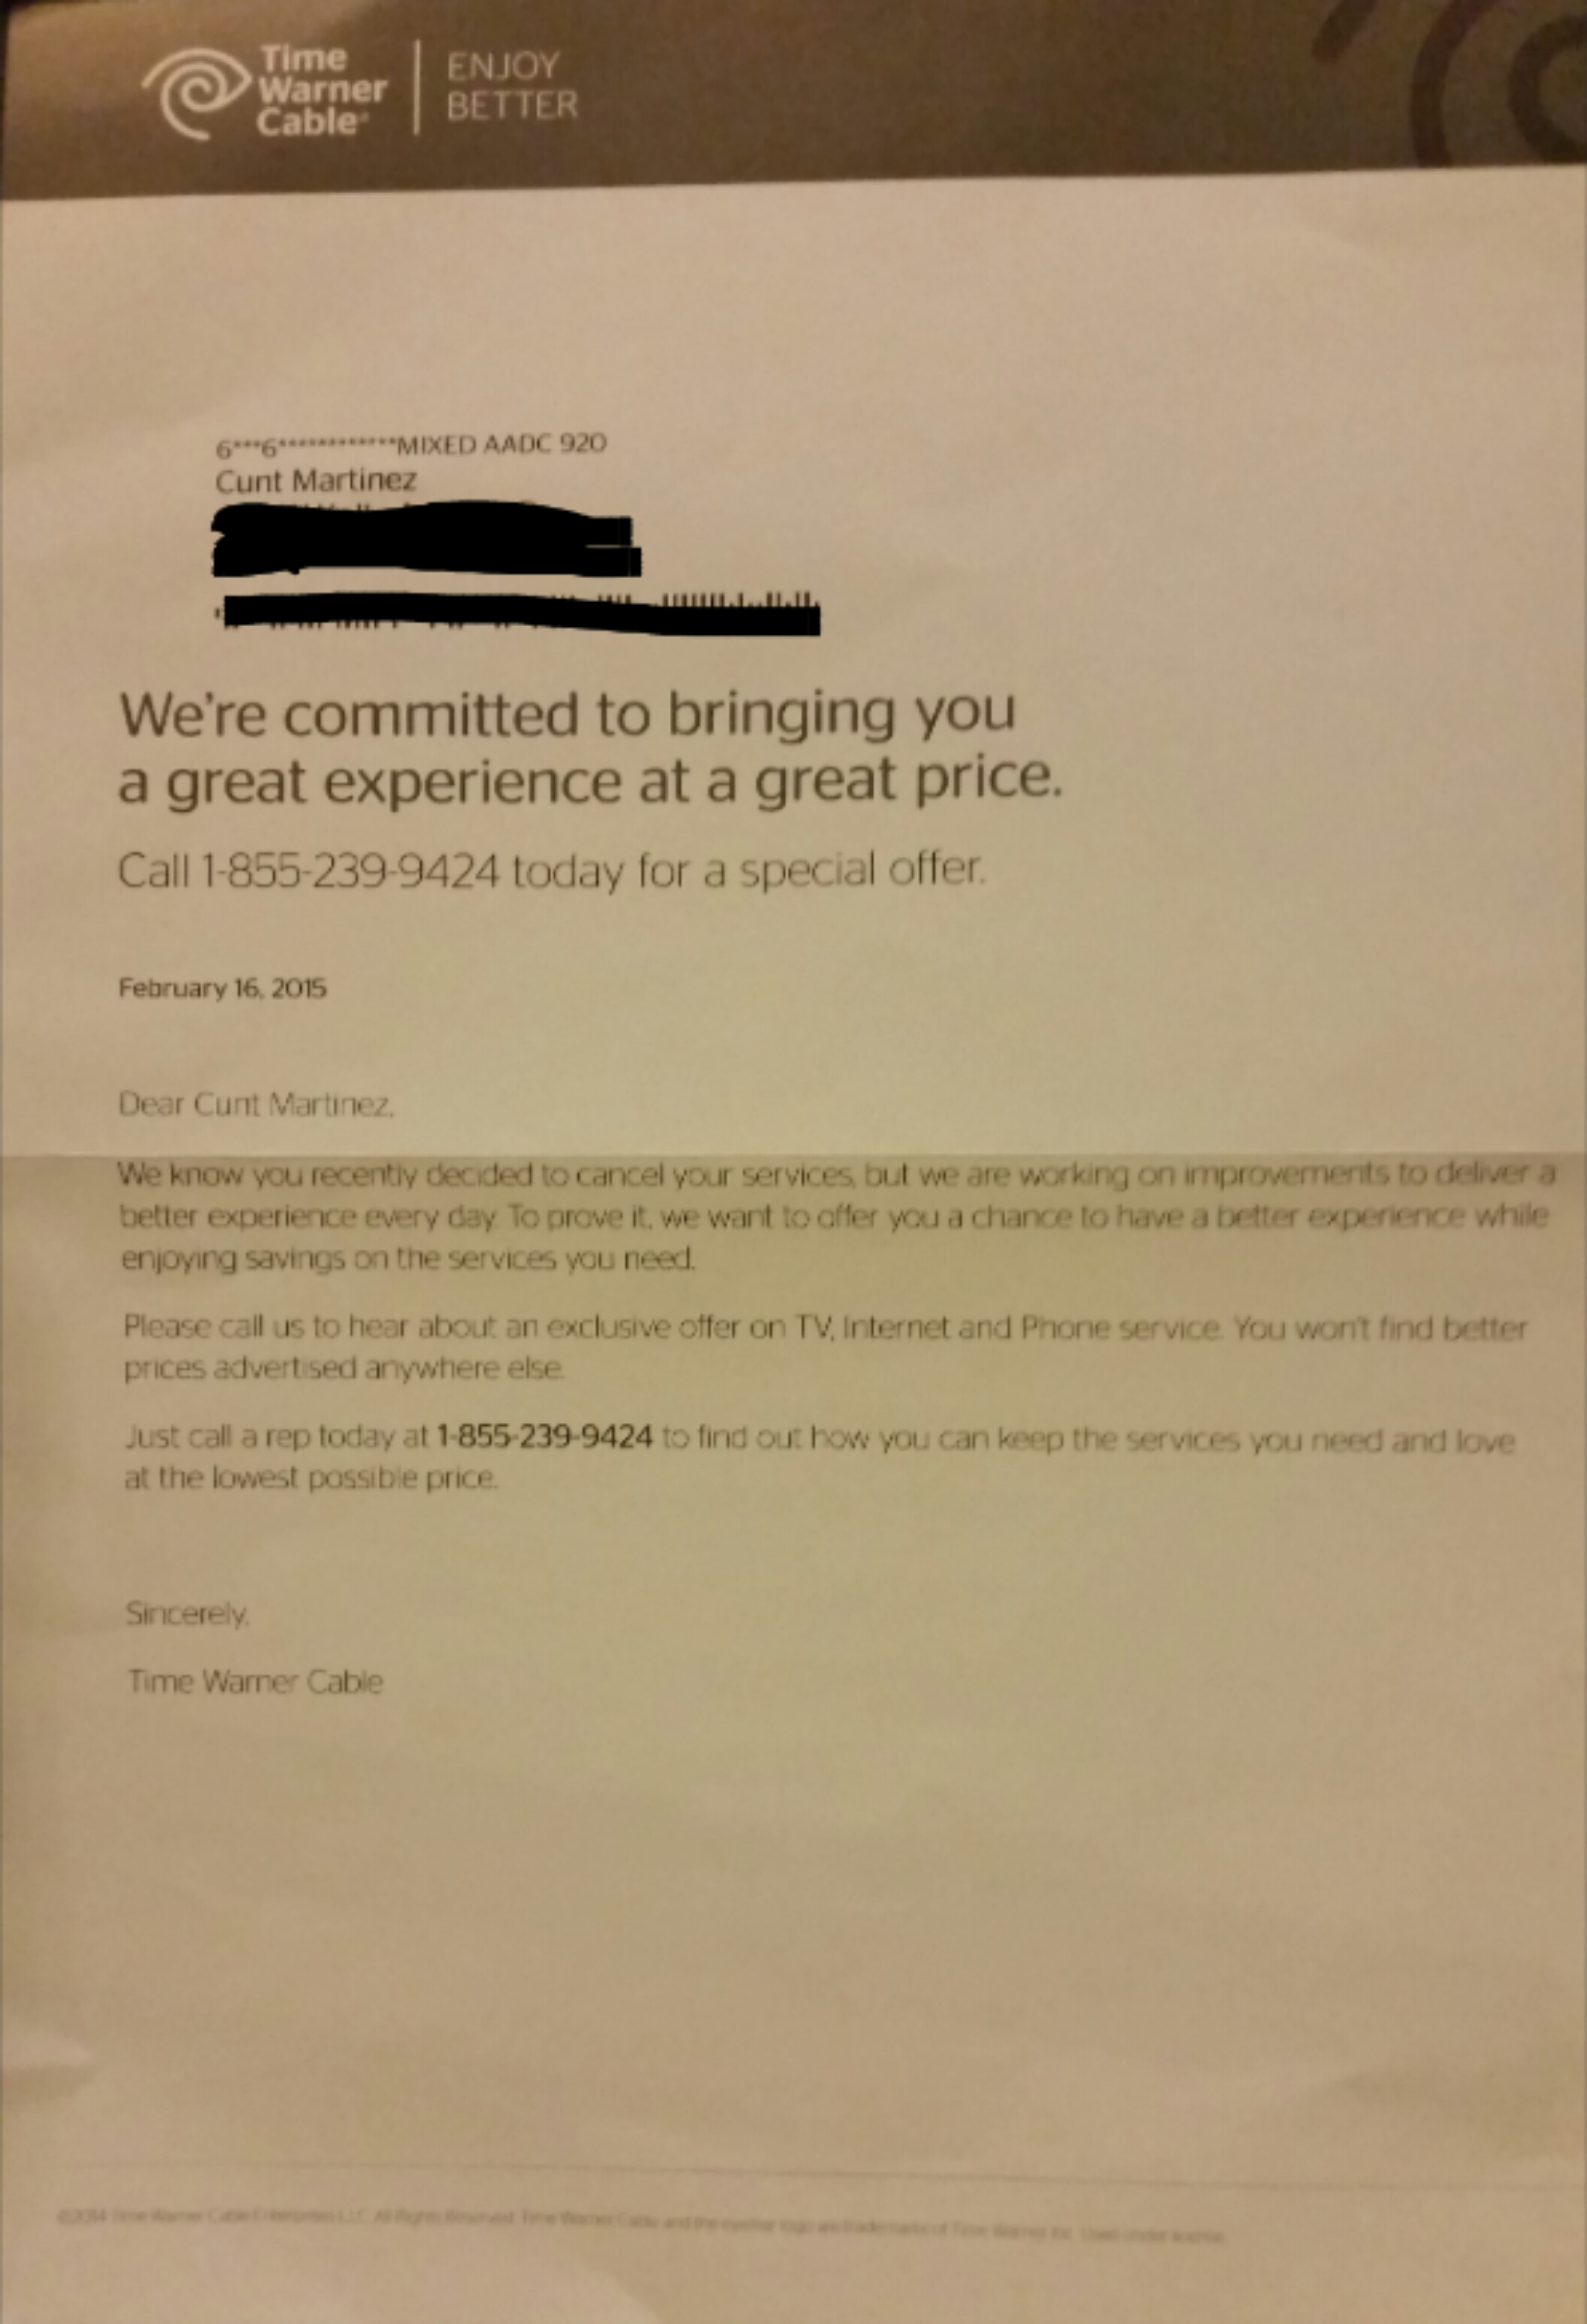 time warner cable calls customer  u201cc  t u201d after she reports